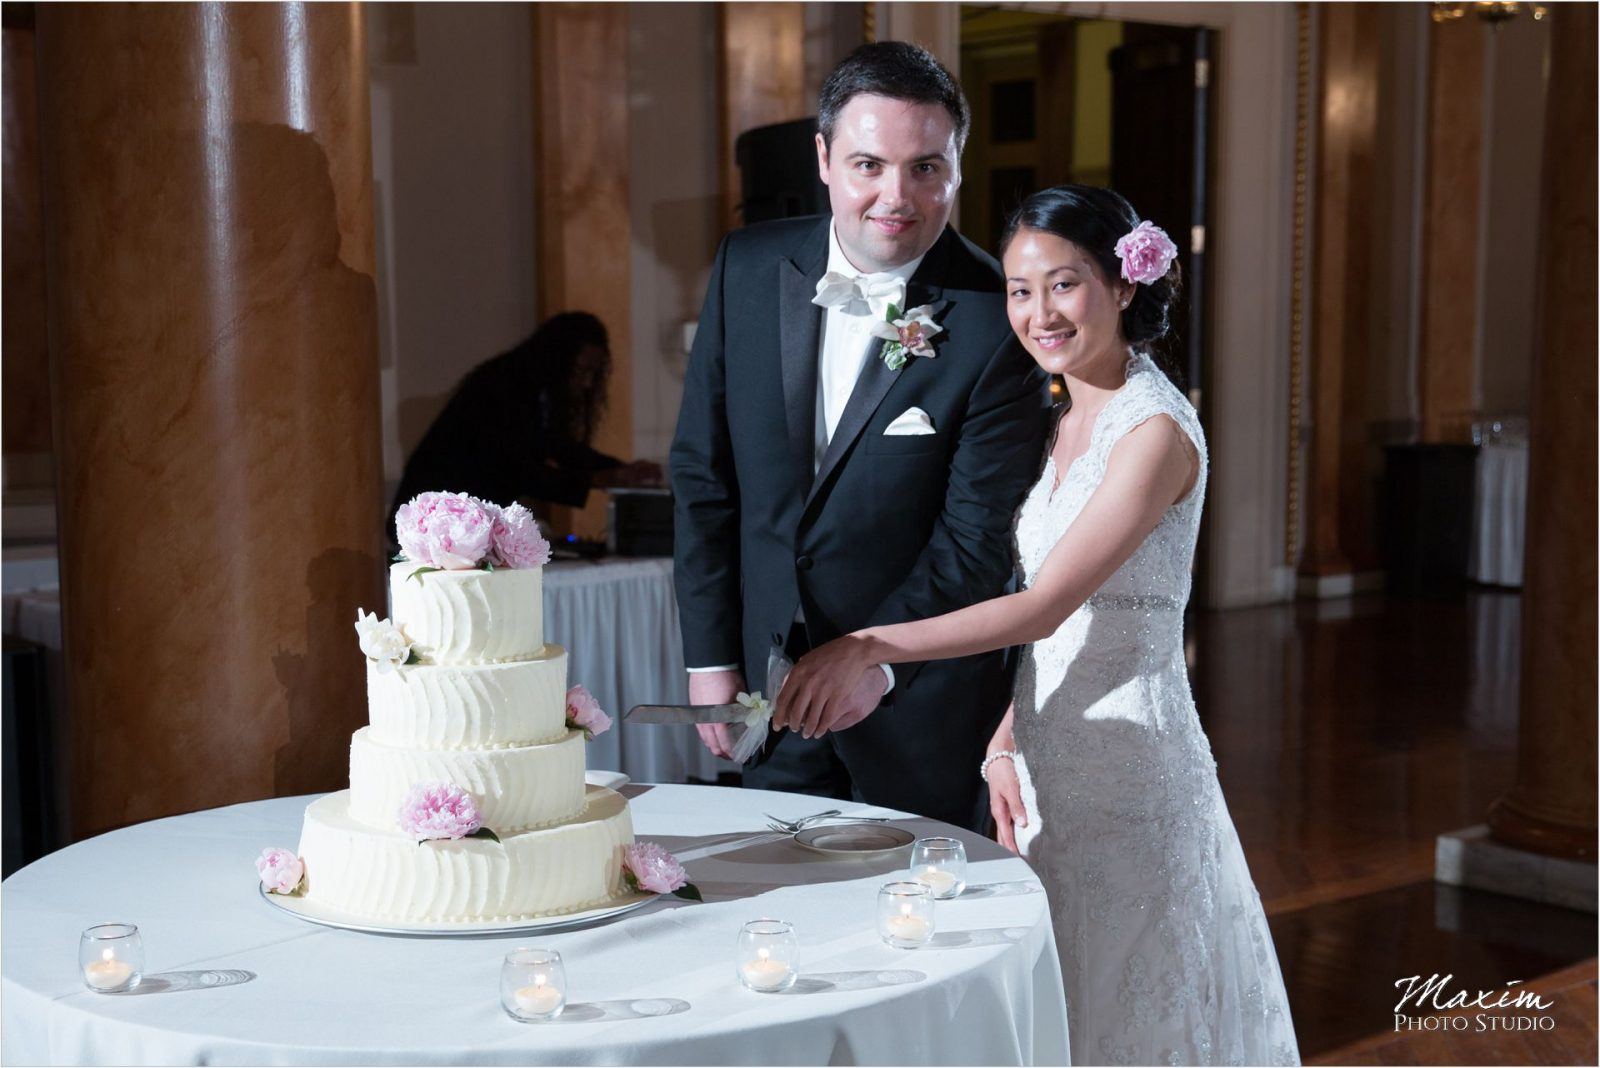 Cincinnati club Wedding cake cutting